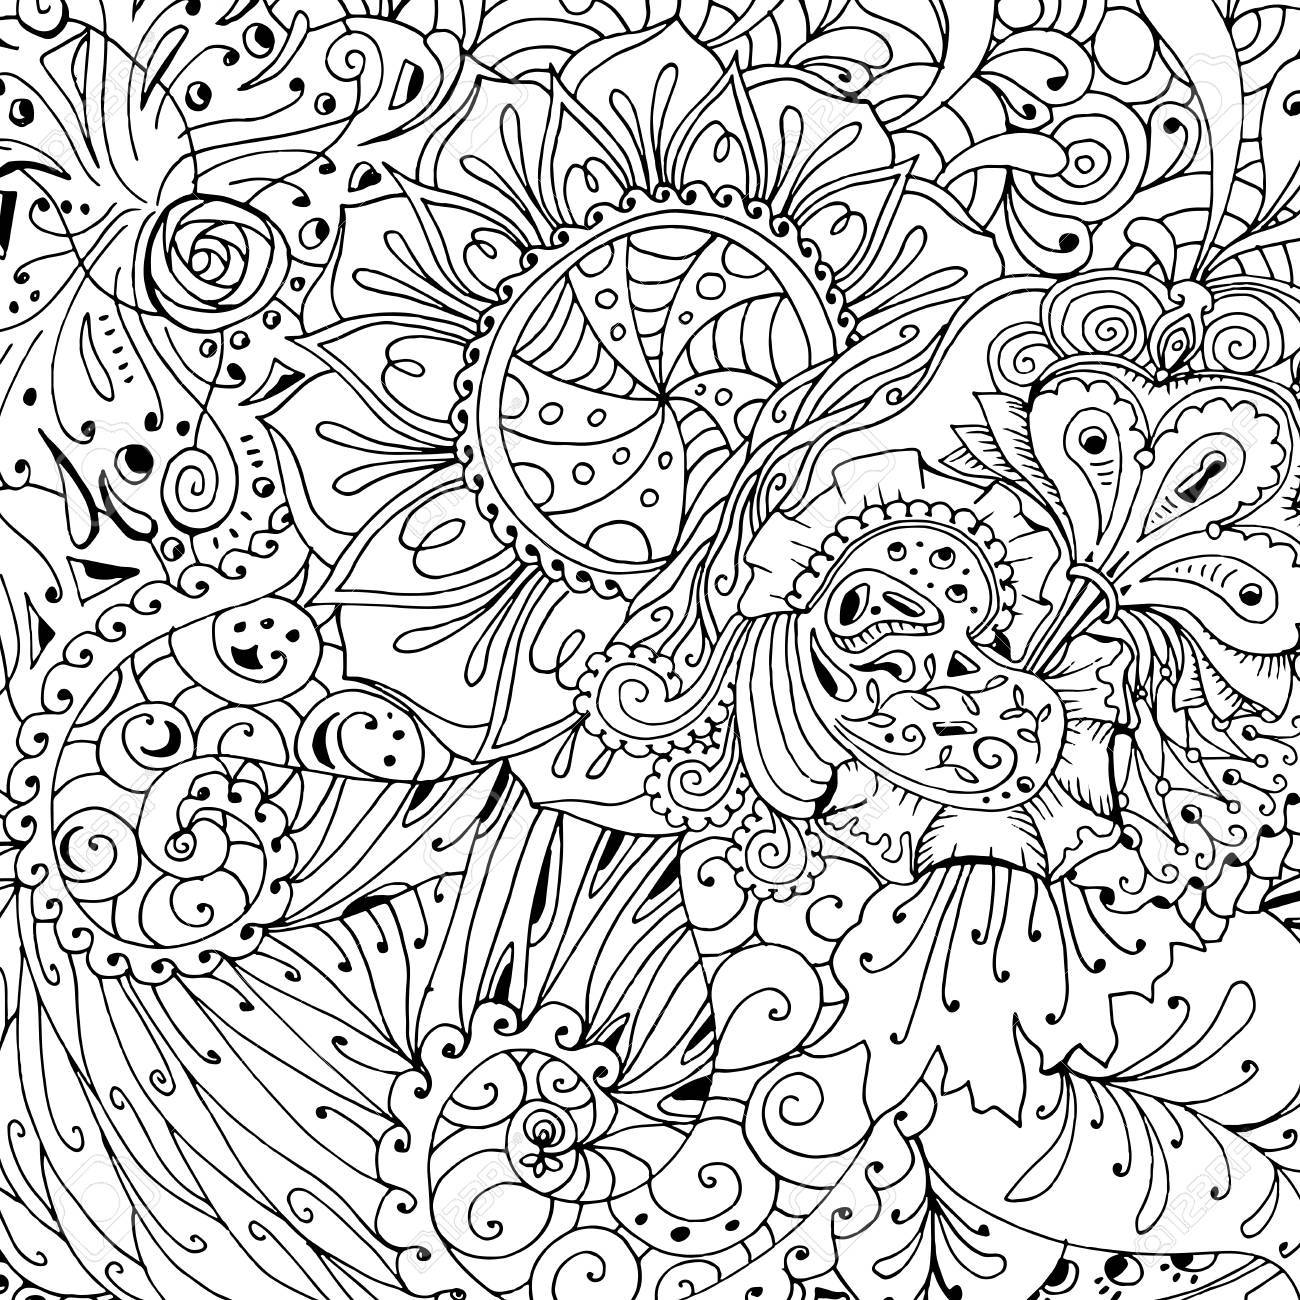 Coloring Book Page Design With Pattern. Mandala Ethnic Ornament ...